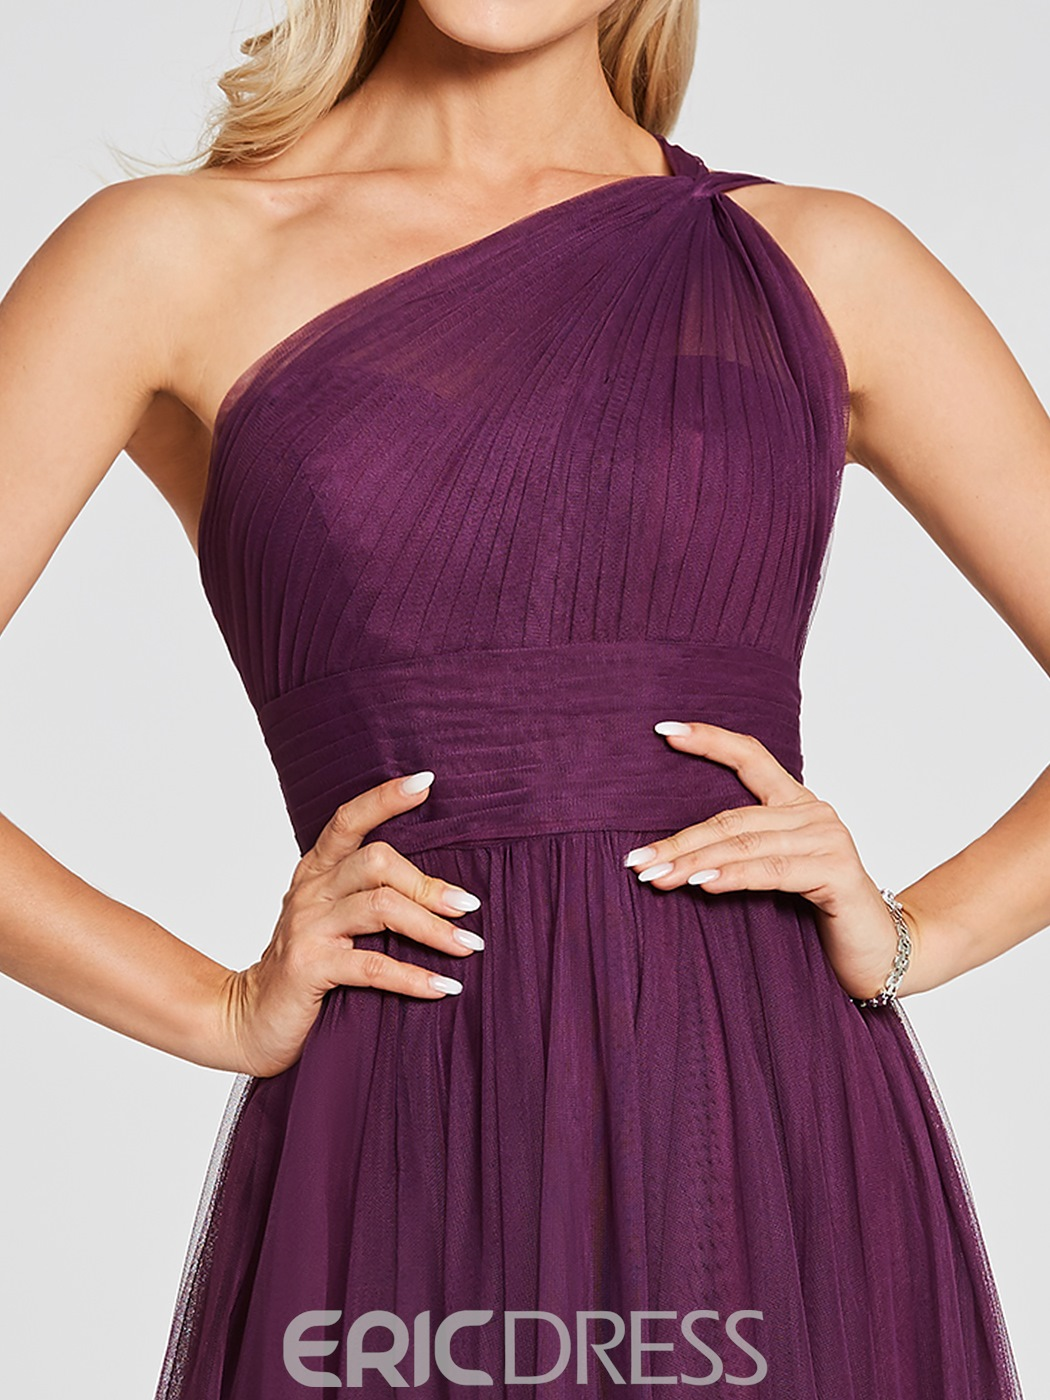 Ericdress One Shoulder A Line Tulle Long Bridesmaid Dress